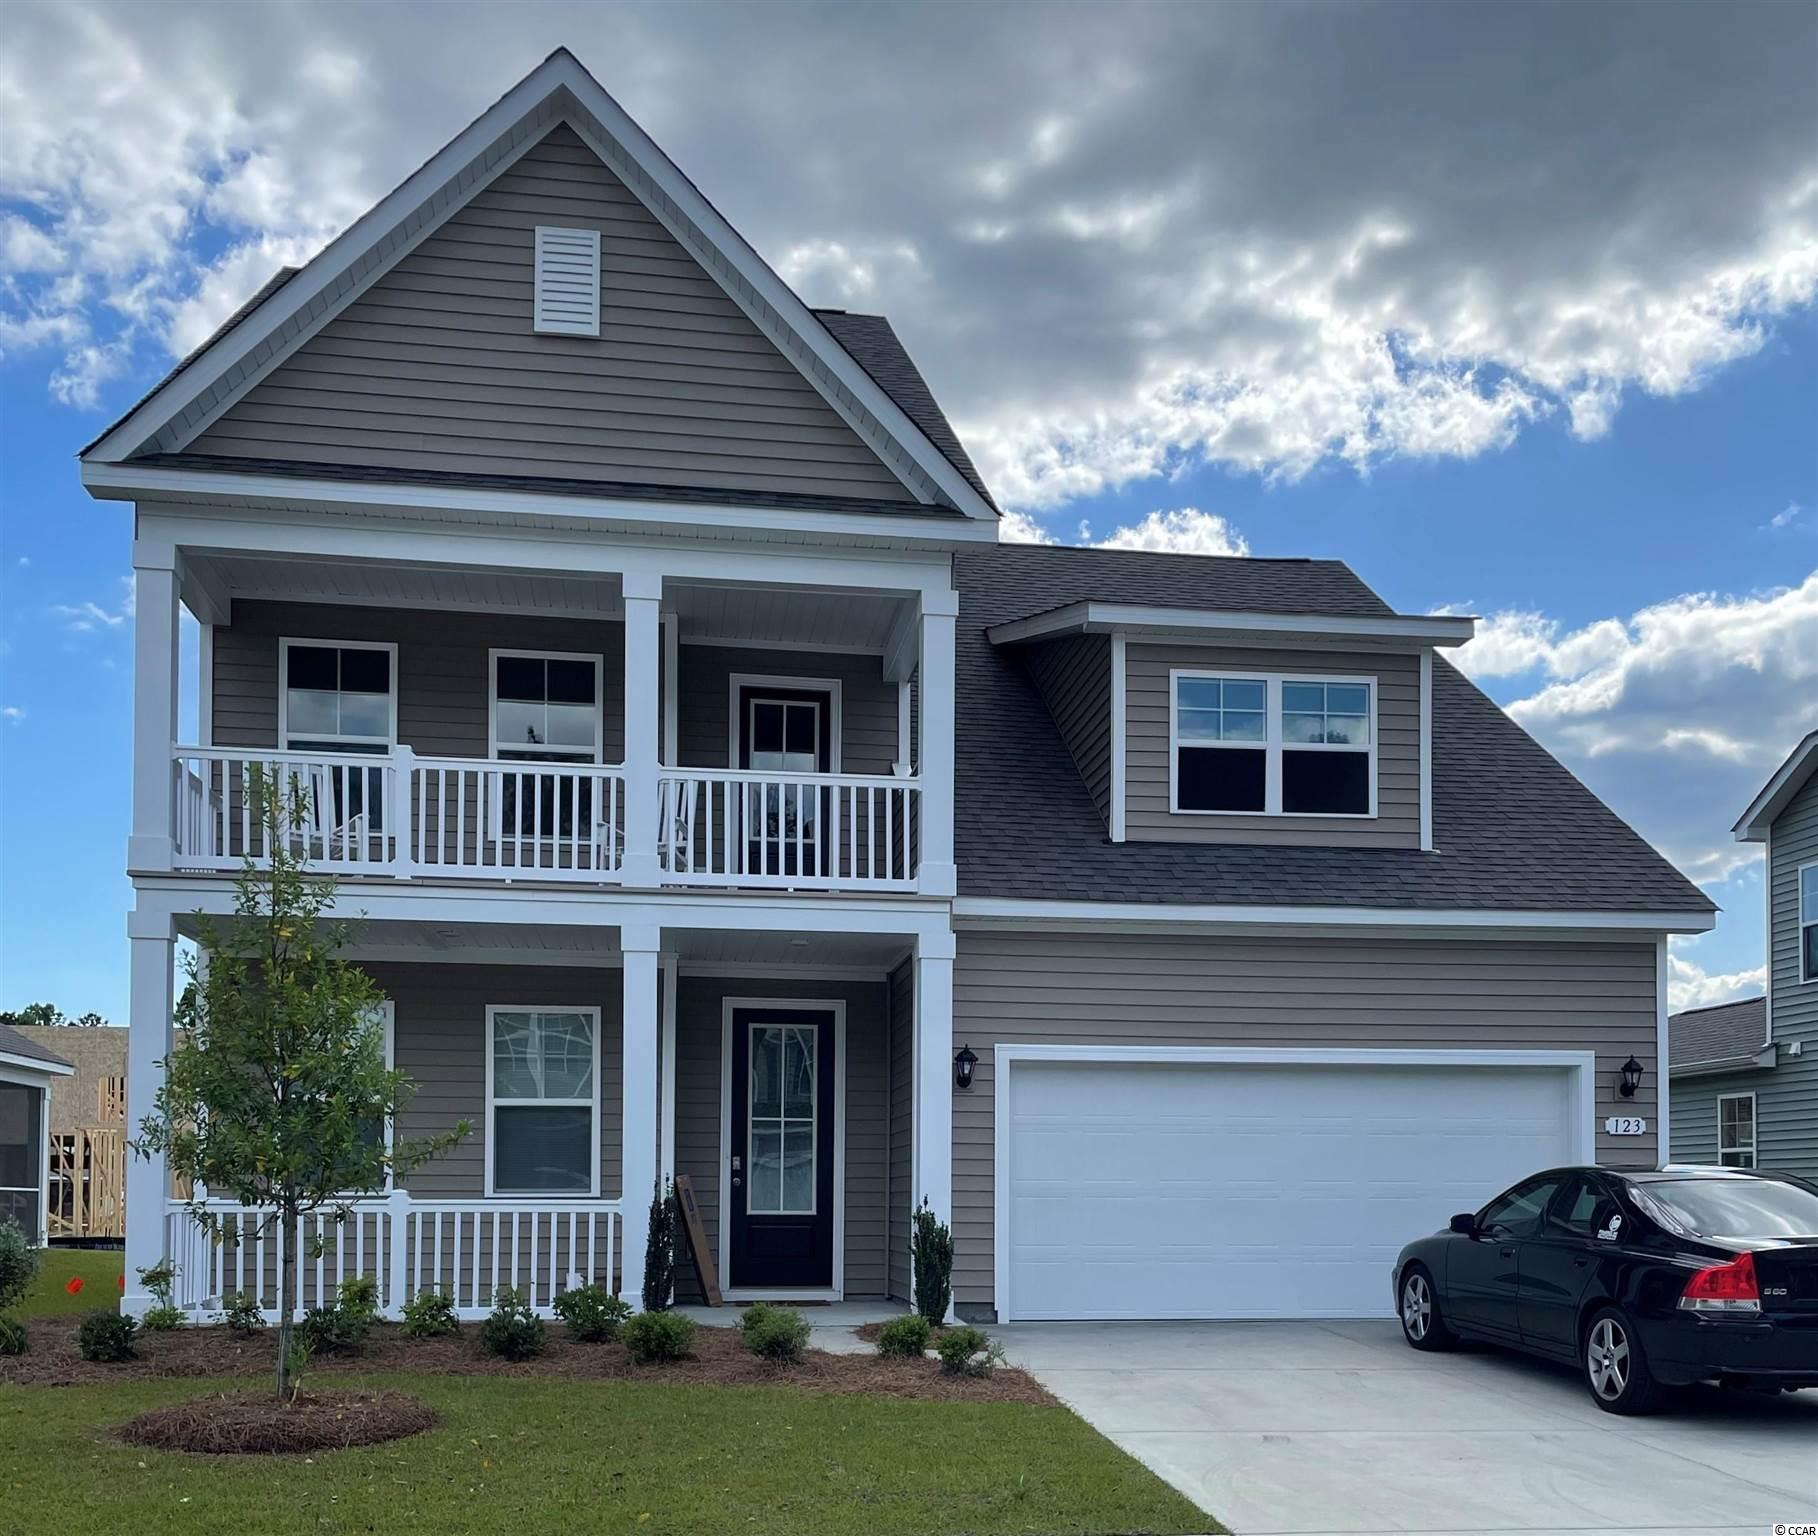 New phase now selling! Hidden Brooke is a beautiful community with an amenity that includes a pool with large deck area, clubhouse, exercise room, and fire pit overlooking the water. Minutes away from Highway 31 which provides quick and easy access to all of the Grand Strand's offerings: dining, entertainment, shopping, and golf! Tranquil setting just a short drive to the beach. The Willow Oak is our very popular two-story plan featuring an open concept design and a spacious primary bedroom on the first floor. Perfect for entertaining, the gourmet kitchen overlooks the open family room and features white painted cabinetry, granite countertops, and stainless Whirlpool appliances including a gas range. Wide plank laminate flooring flows throughout the kitchen, living room, dining room, and also into the first floor flex room which would make a great home office or formal dining room. Covered rear porch creates a seamless transition from indoor to outdoor living! Upstairs you will find a versatile loft space along with three great size bedrooms and two full bathrooms. One of these bedrooms is a self-contained suite with private bath!  *Photos are of a similar Willow Oak home. (Home and community information, including pricing, included features, terms, availability and amenities, are subject to change prior to sale at any time without notice or obligation. Square footages are approximate. Pictures, photographs, colors, features, and sizes are for illustration purposes only and will vary from the homes as built. Equal housing opportunity builder.)